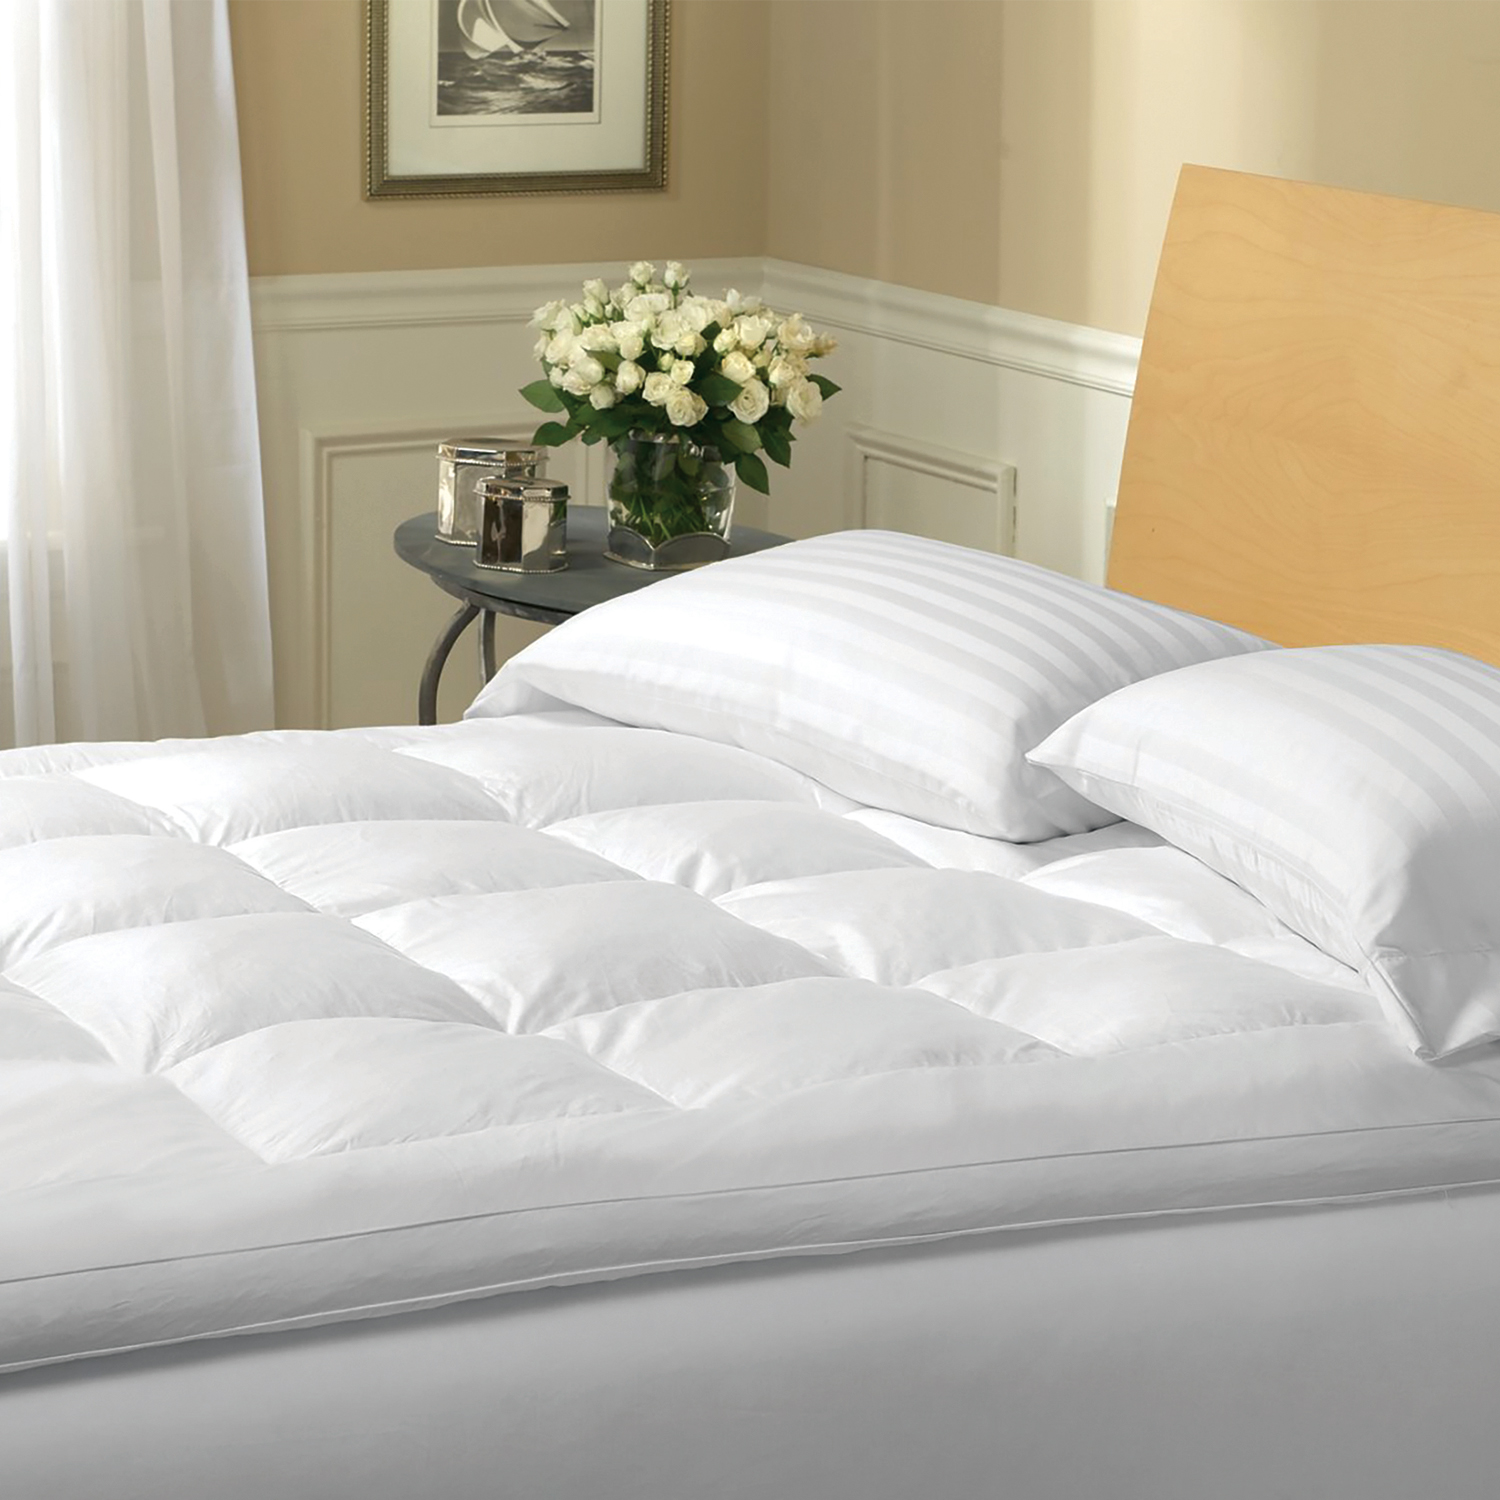 Bailey Amp Cole Luxury Mattress Topper Home Store More